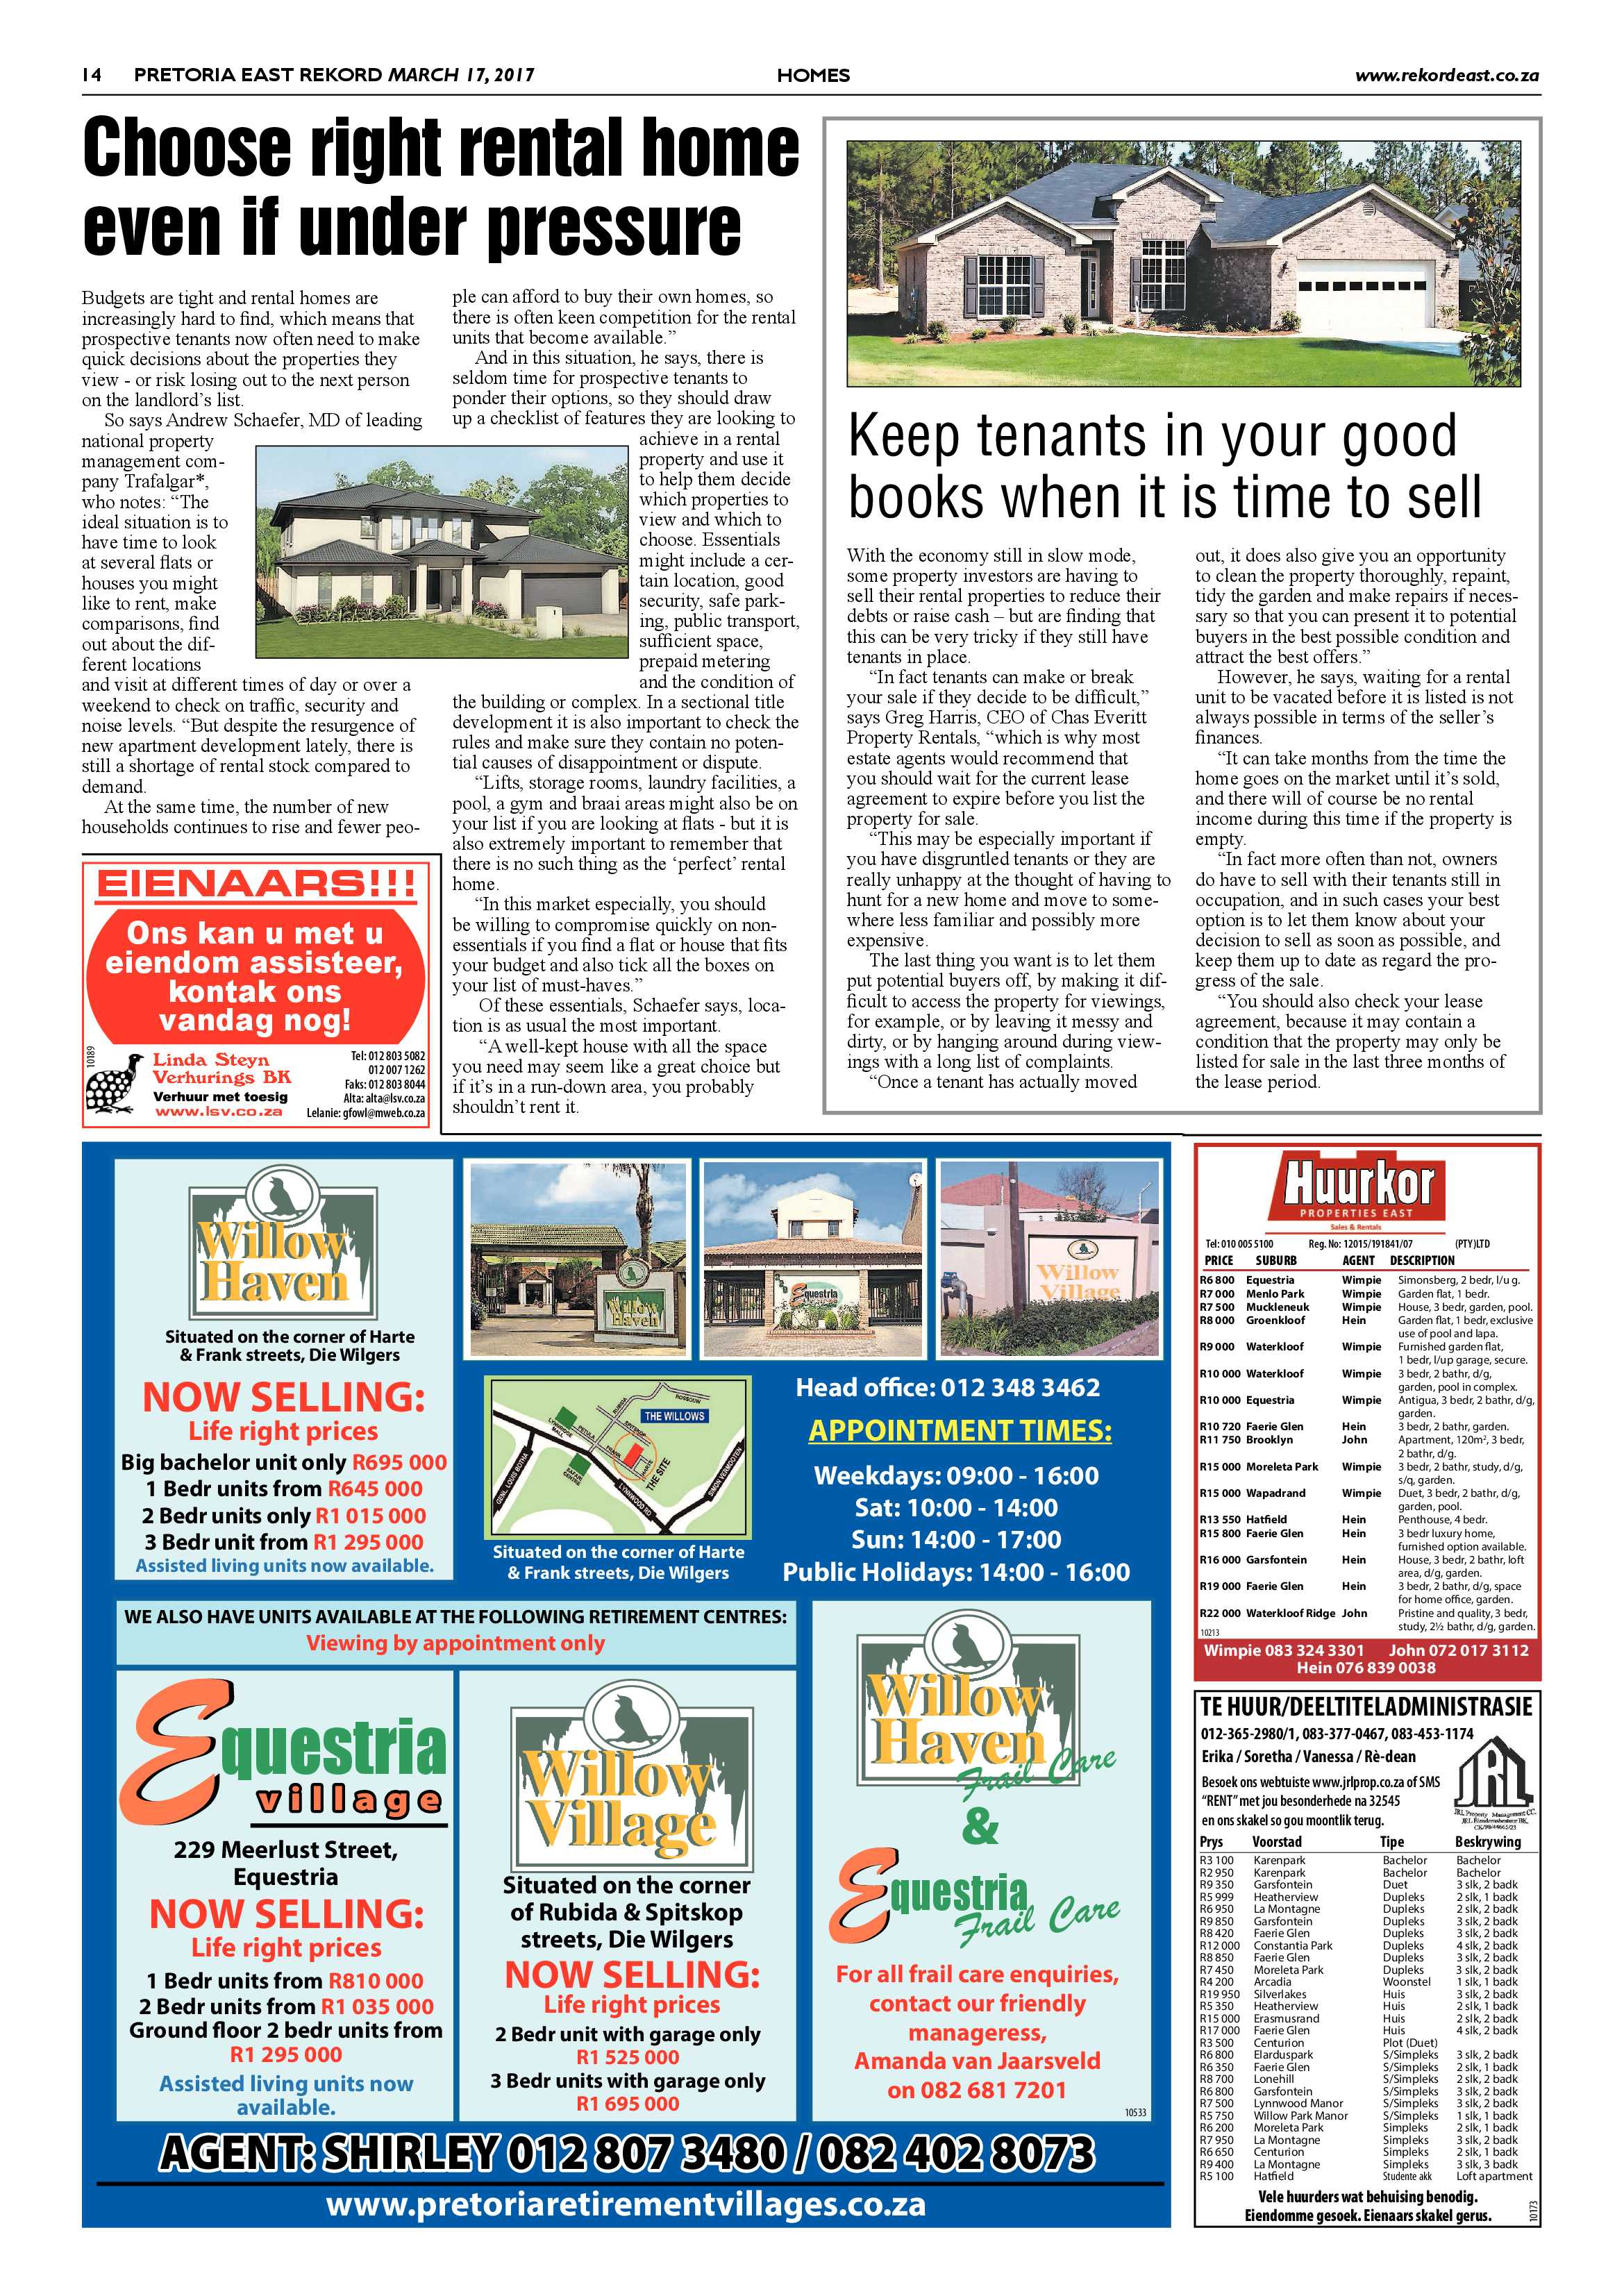 rekord-east-17-march-2017-epapers-page-14